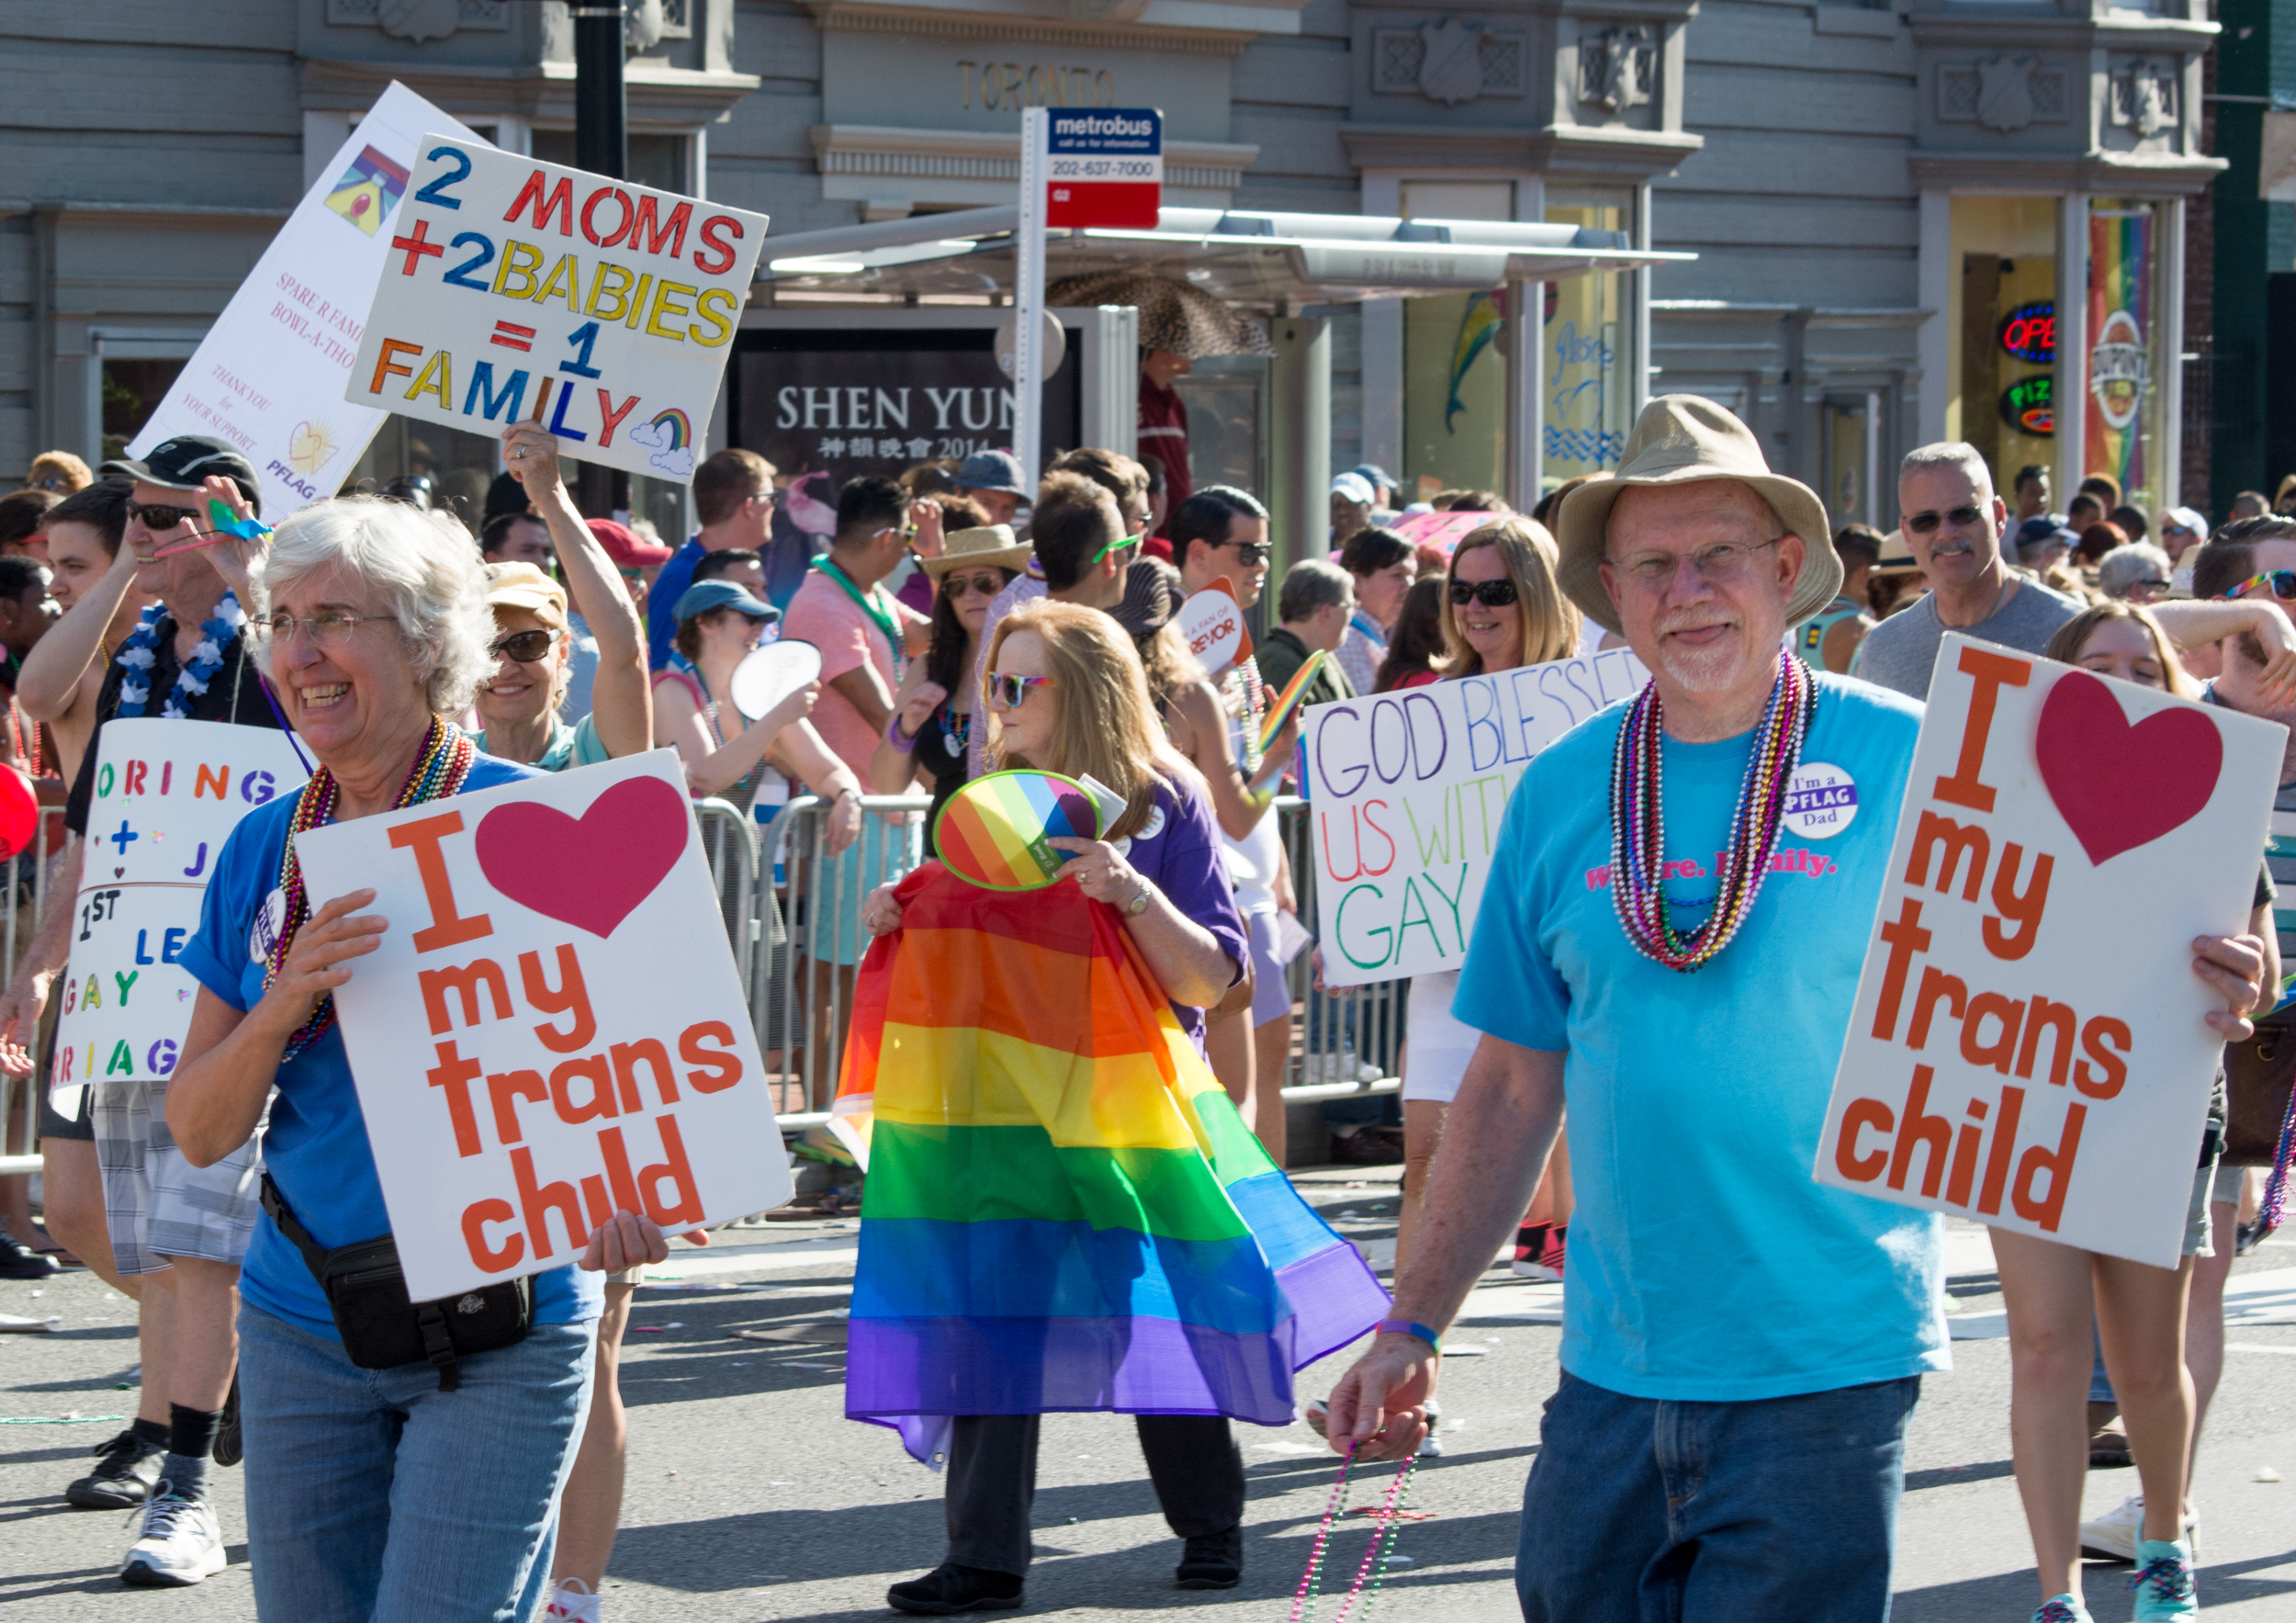 PFLAG_of_the_Lower_Shenandoah_07_-_DC_Capital_Pride_-_2014-06-07.jpg